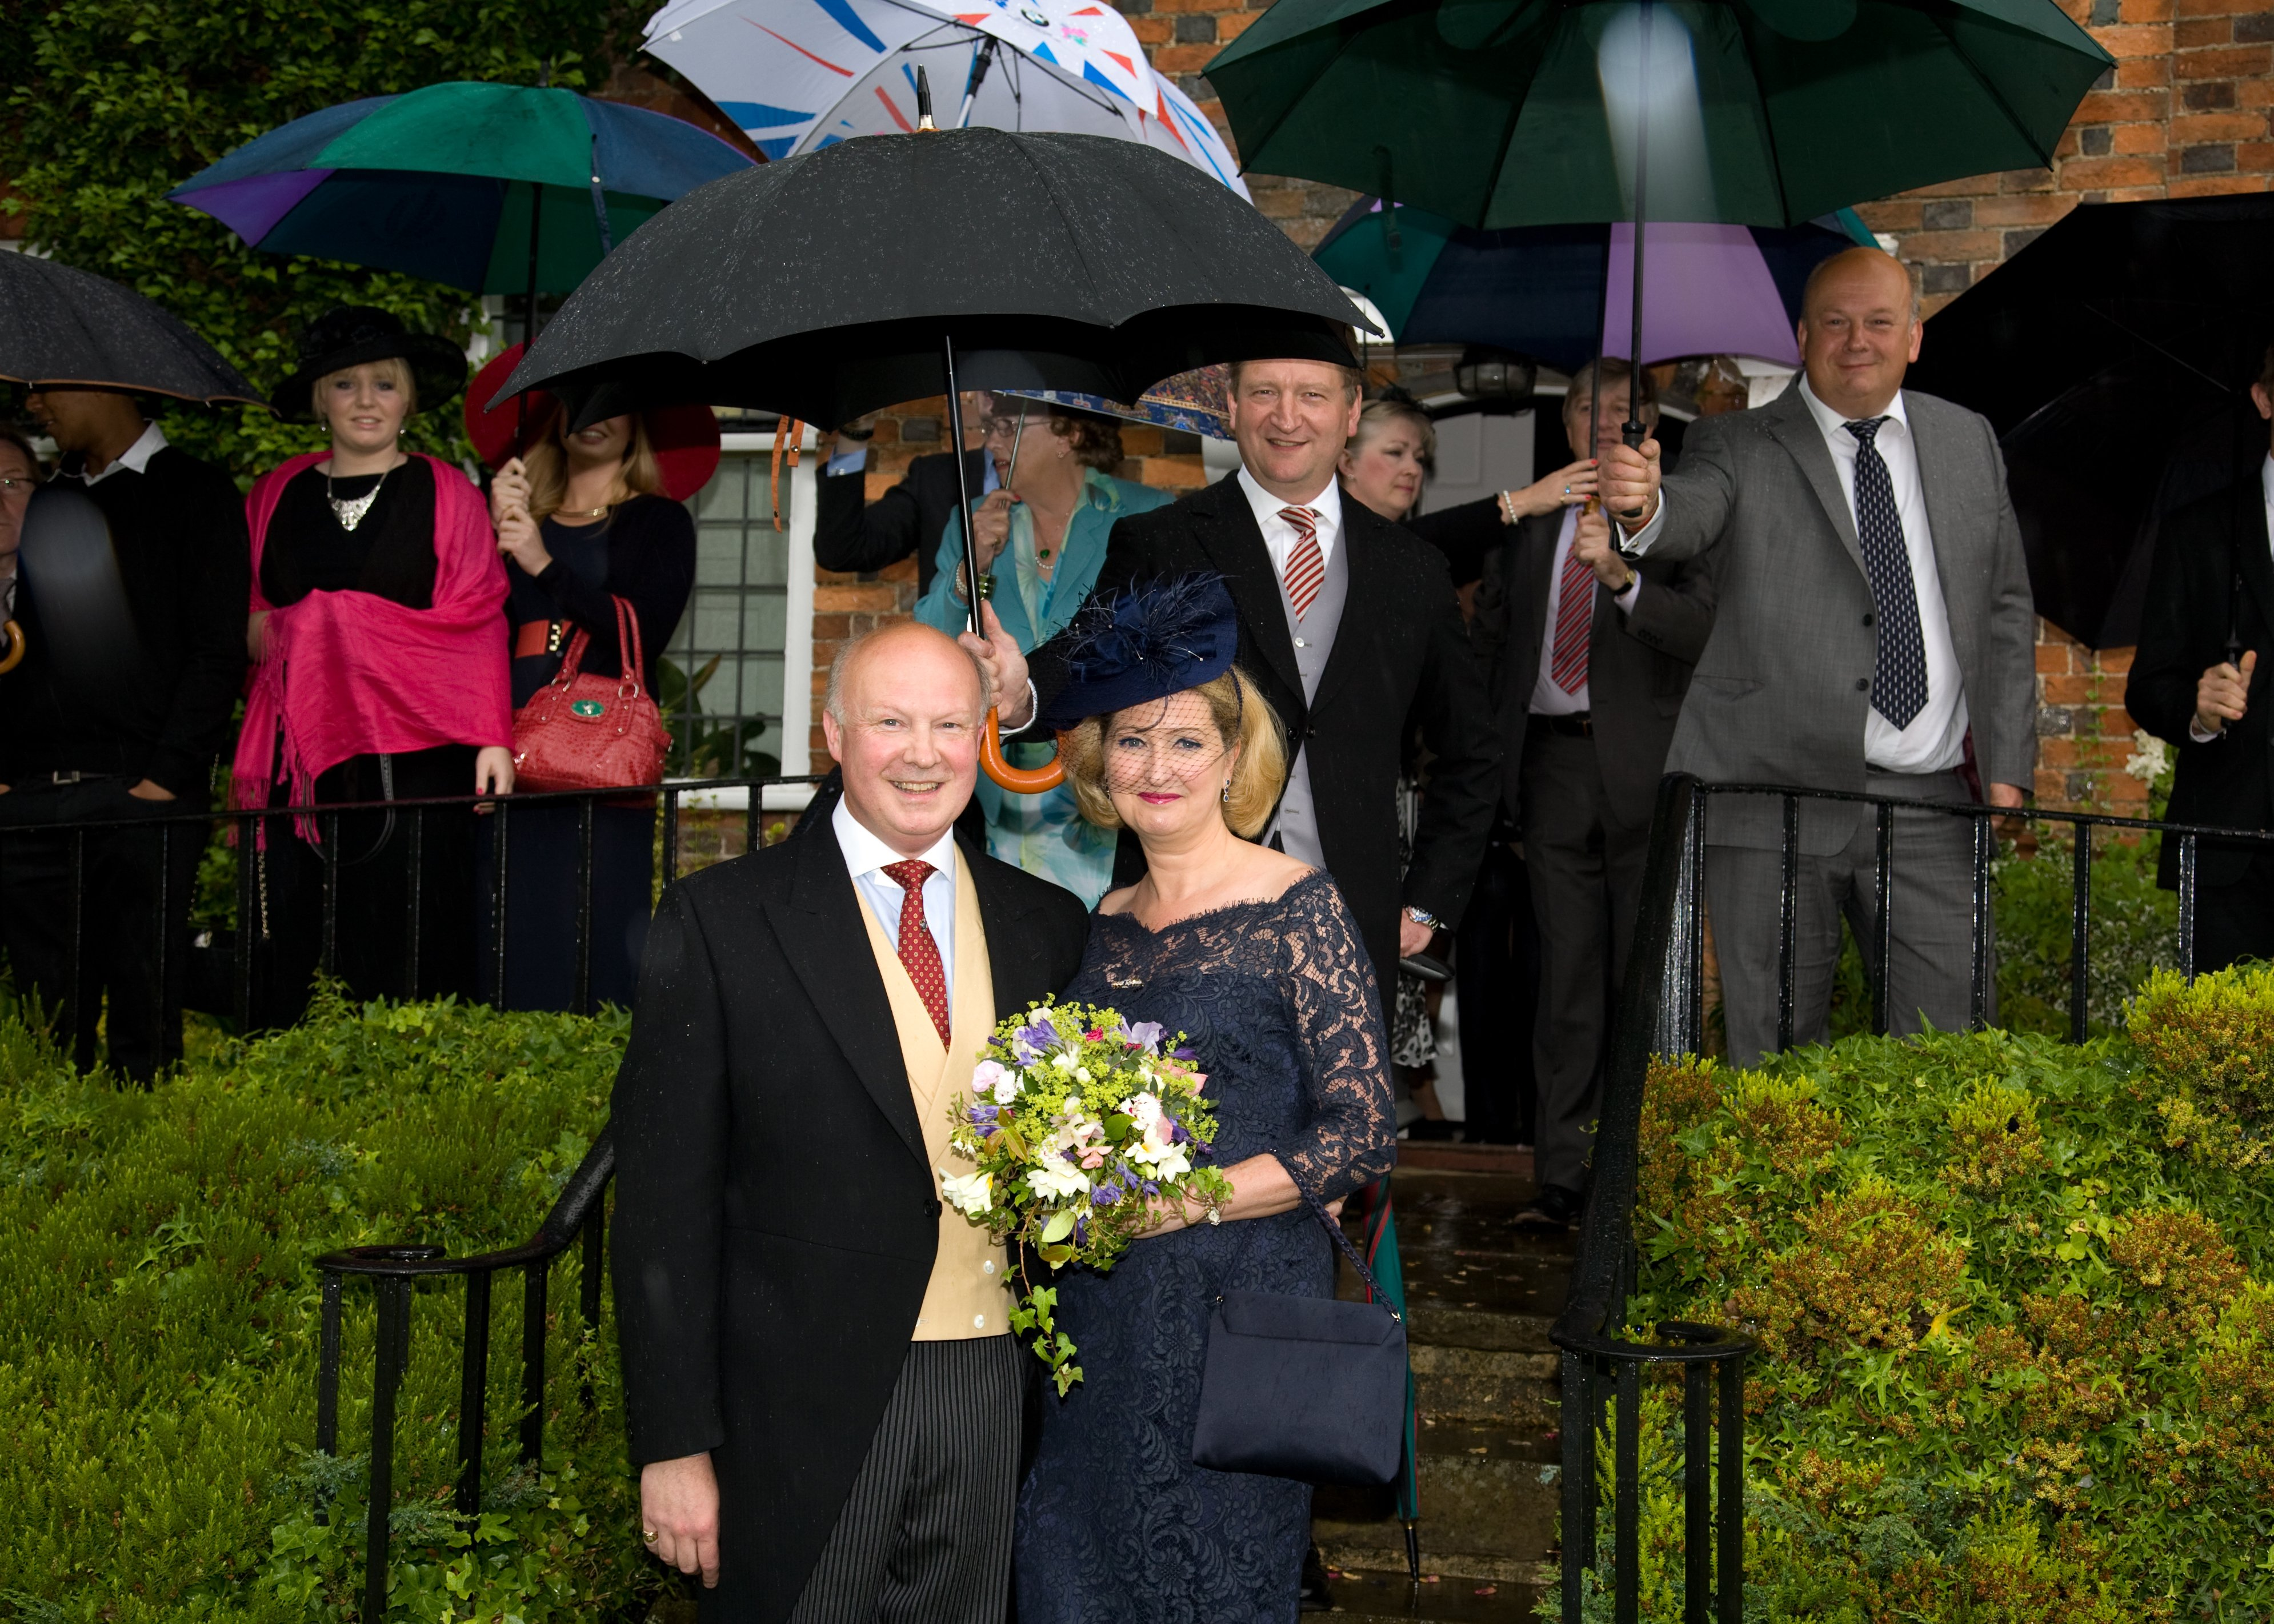 Guests holding umbrellas over themselves and a bride and groom